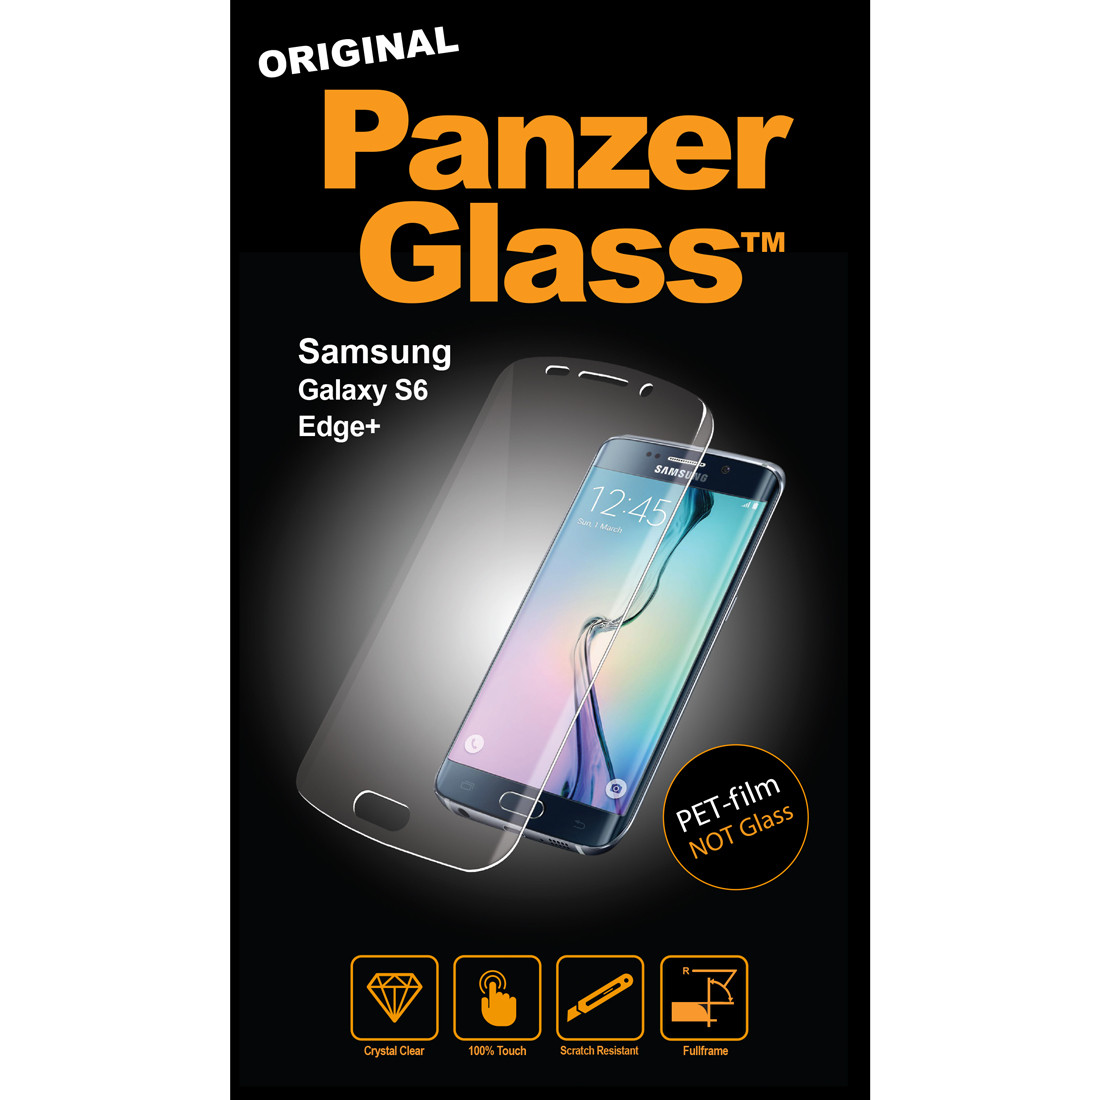 PanzerGlass Samsung Galaxy S6 Edge+ PET film